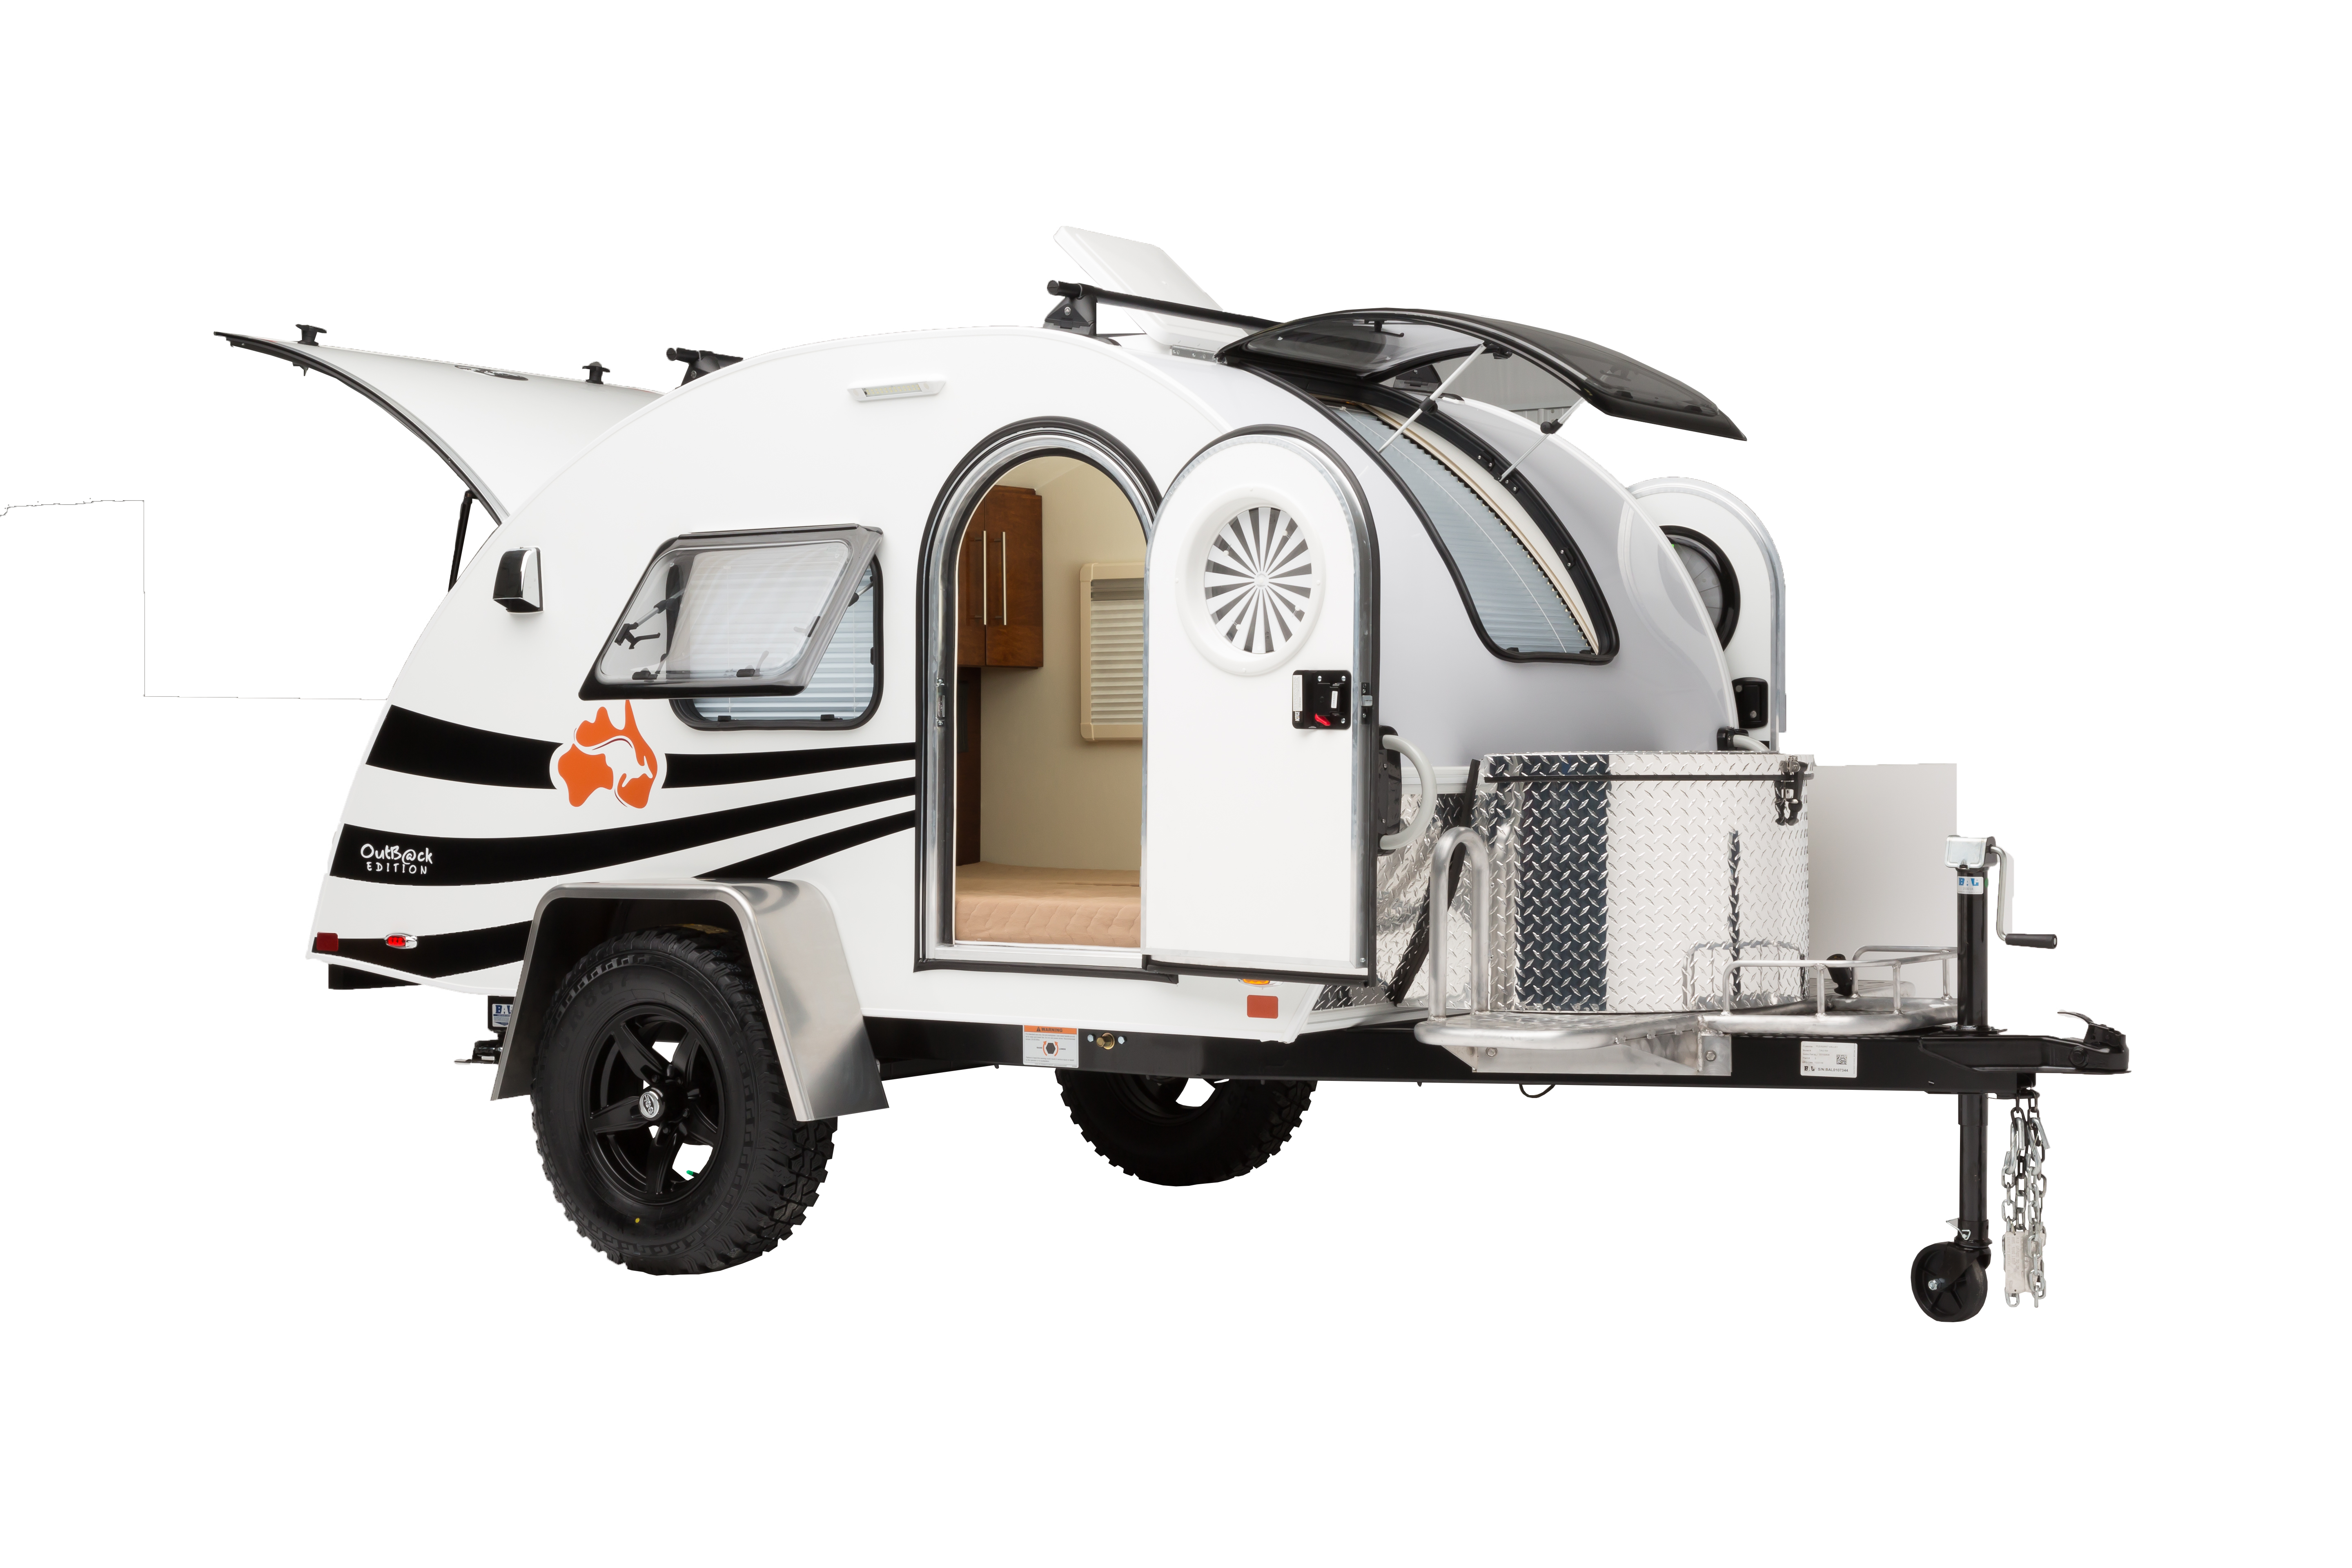 Rv And Trailer Tours